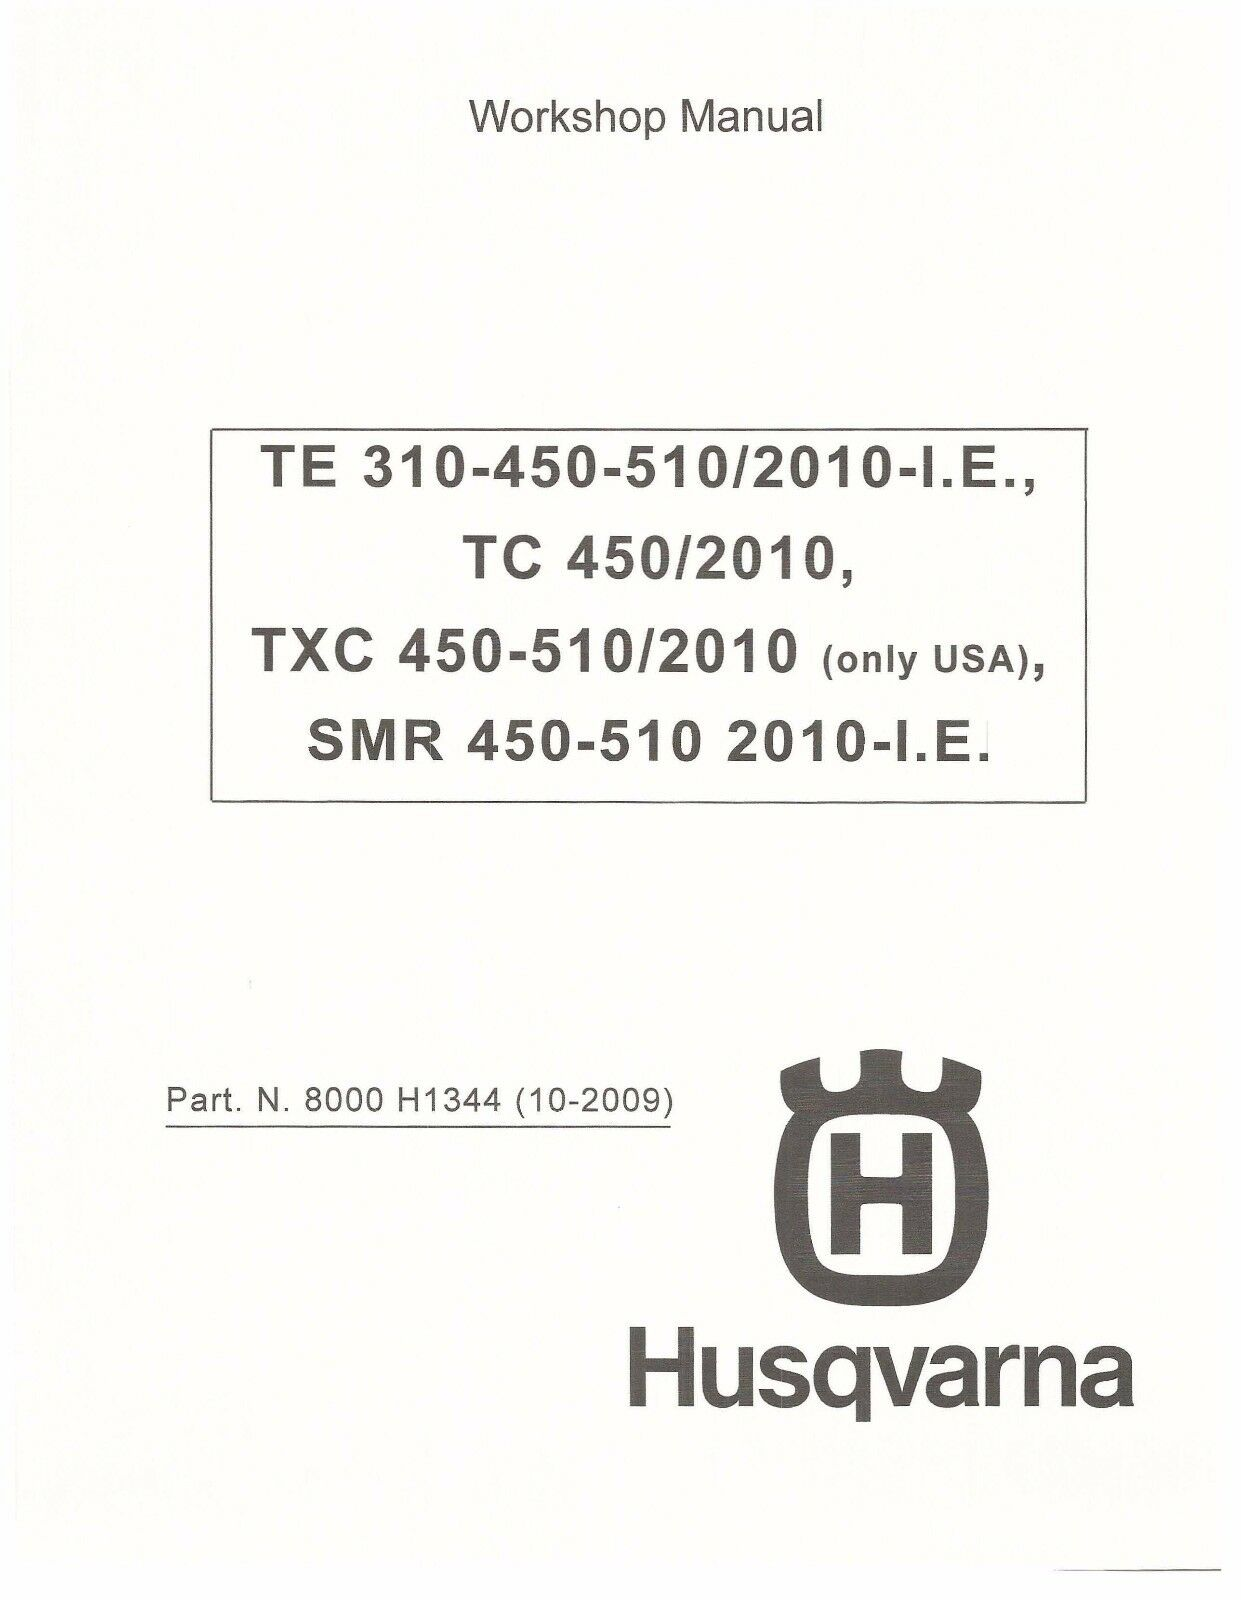 Husqvarna workshop service manual 2010 TXC 450-510 USA & SMR 450-510 1 of  12Only 1 available ...